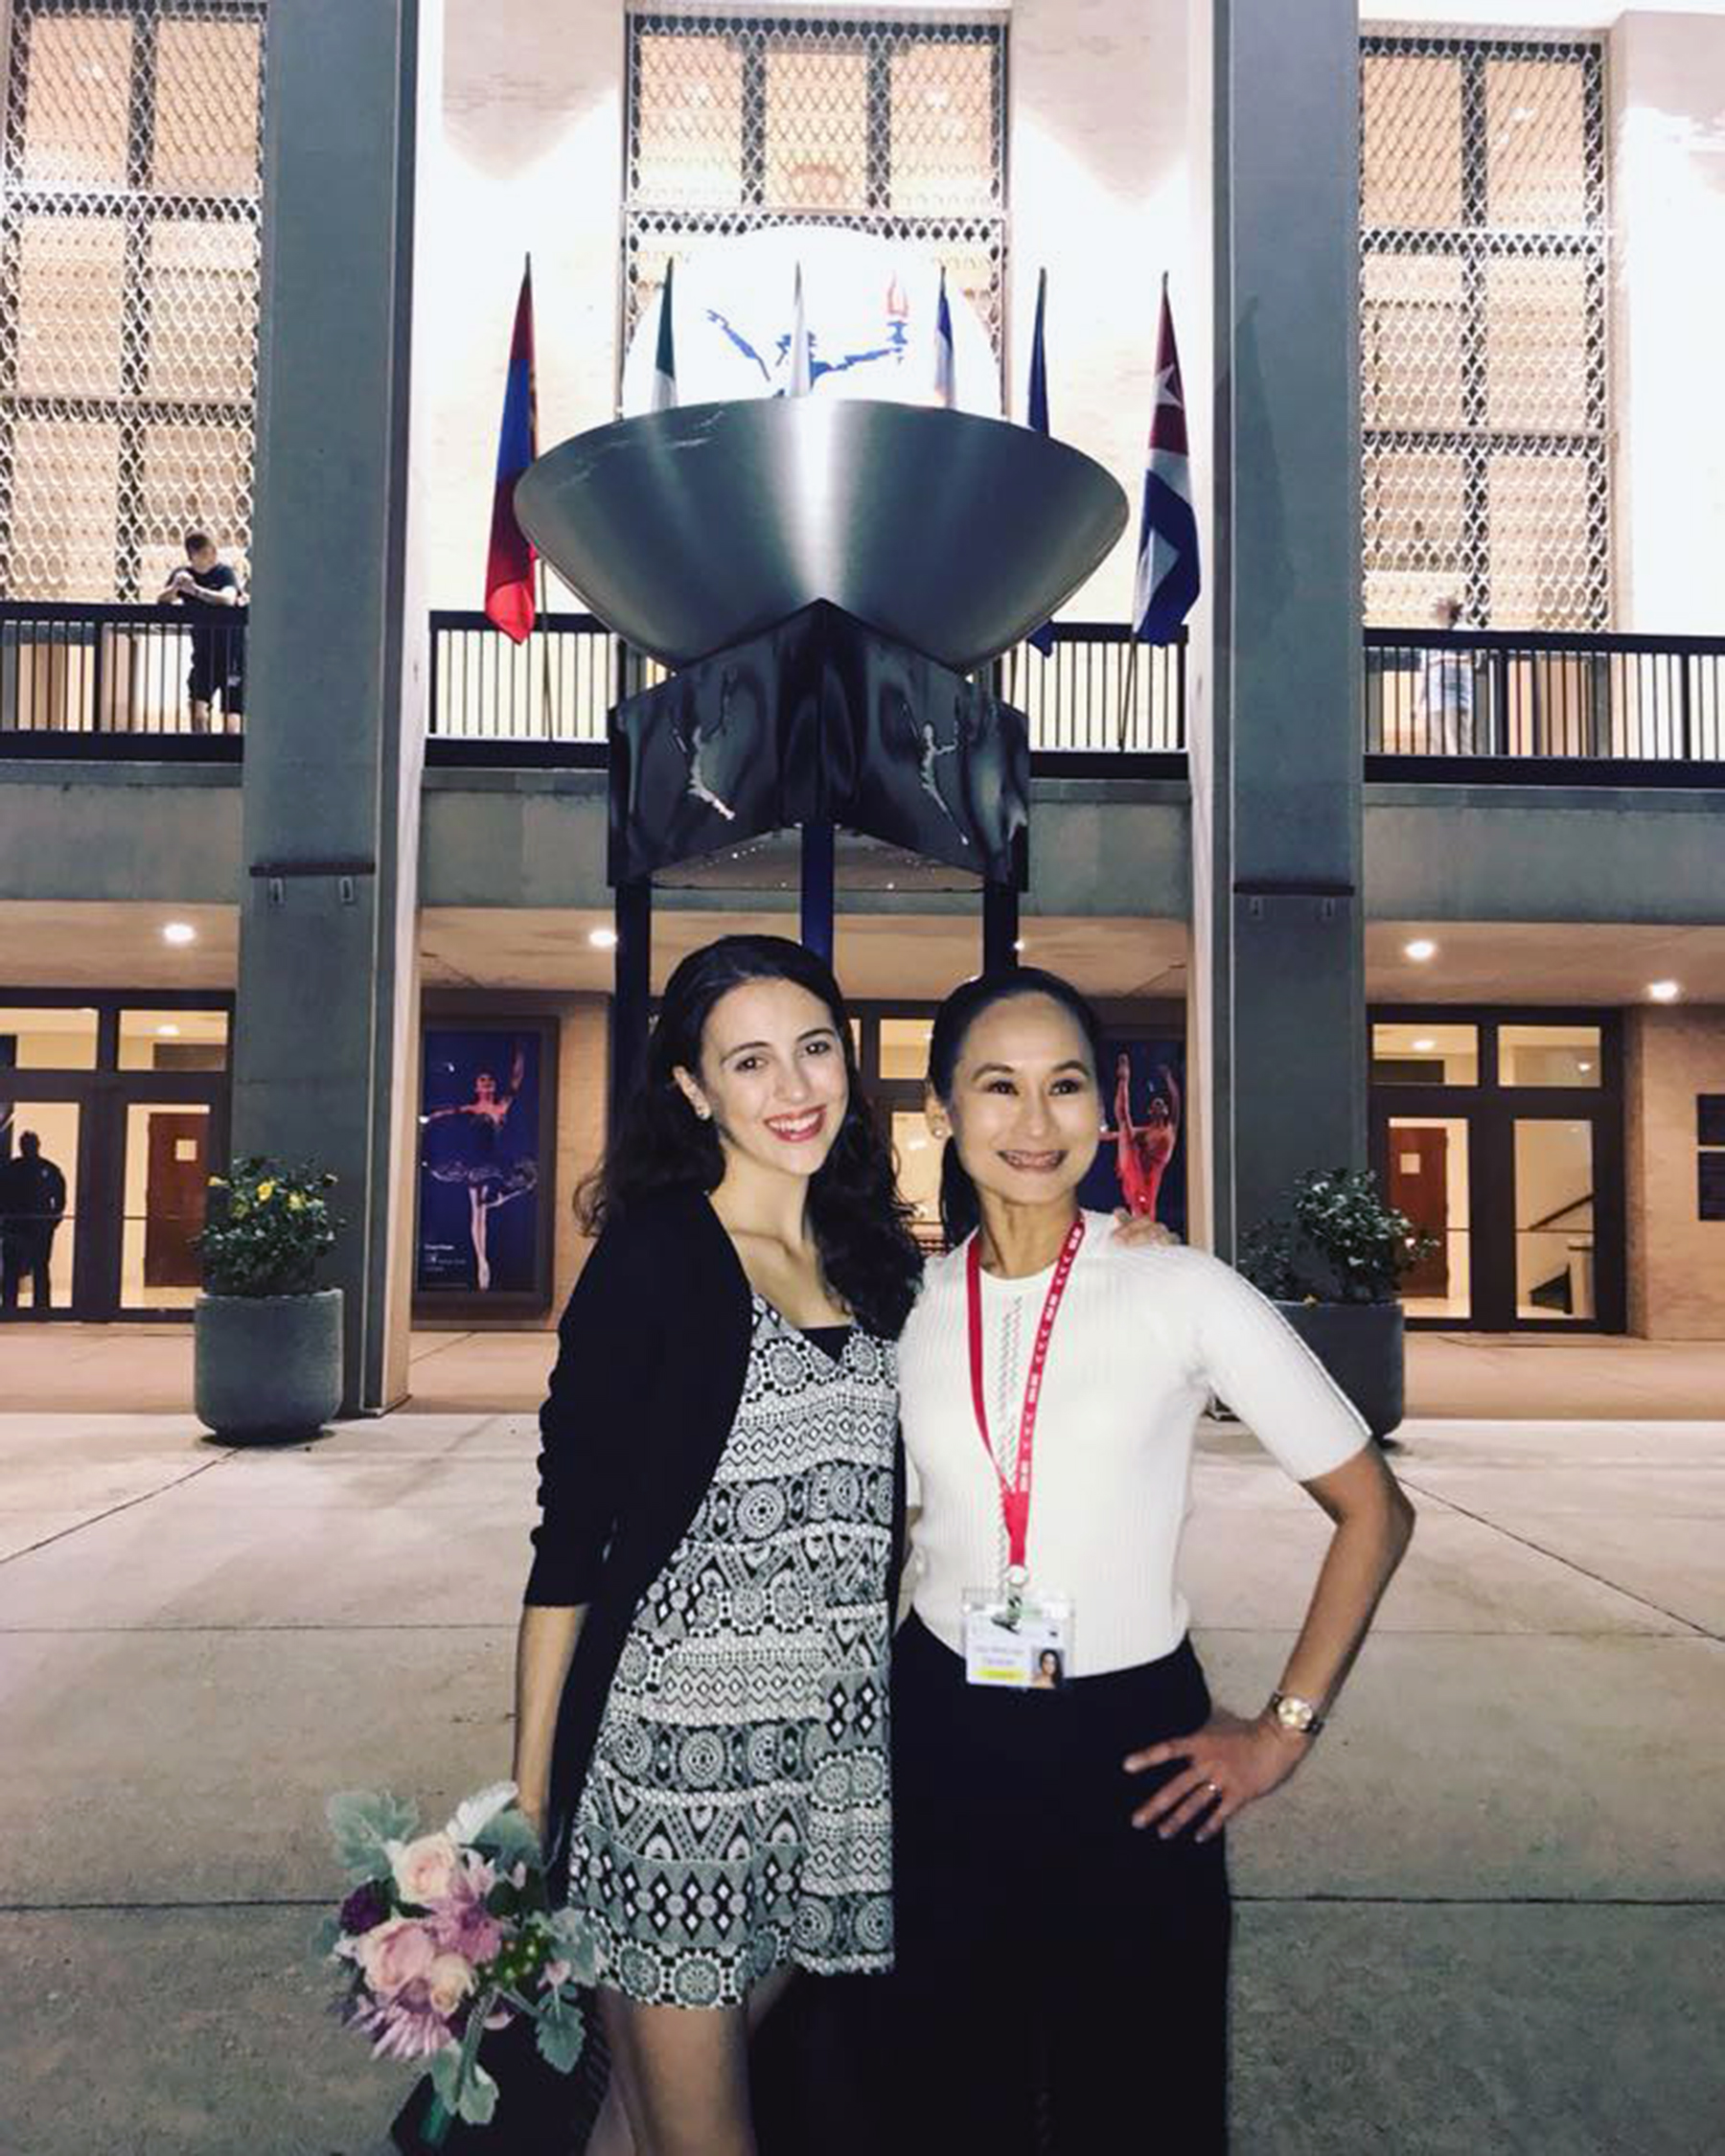 Celebrating with her coach, Ballet Manila artistic director Lisa Macuja-Elizalde, last June after she made it to the final round in the USA International Ballet Competition in Jackson, Mississippi